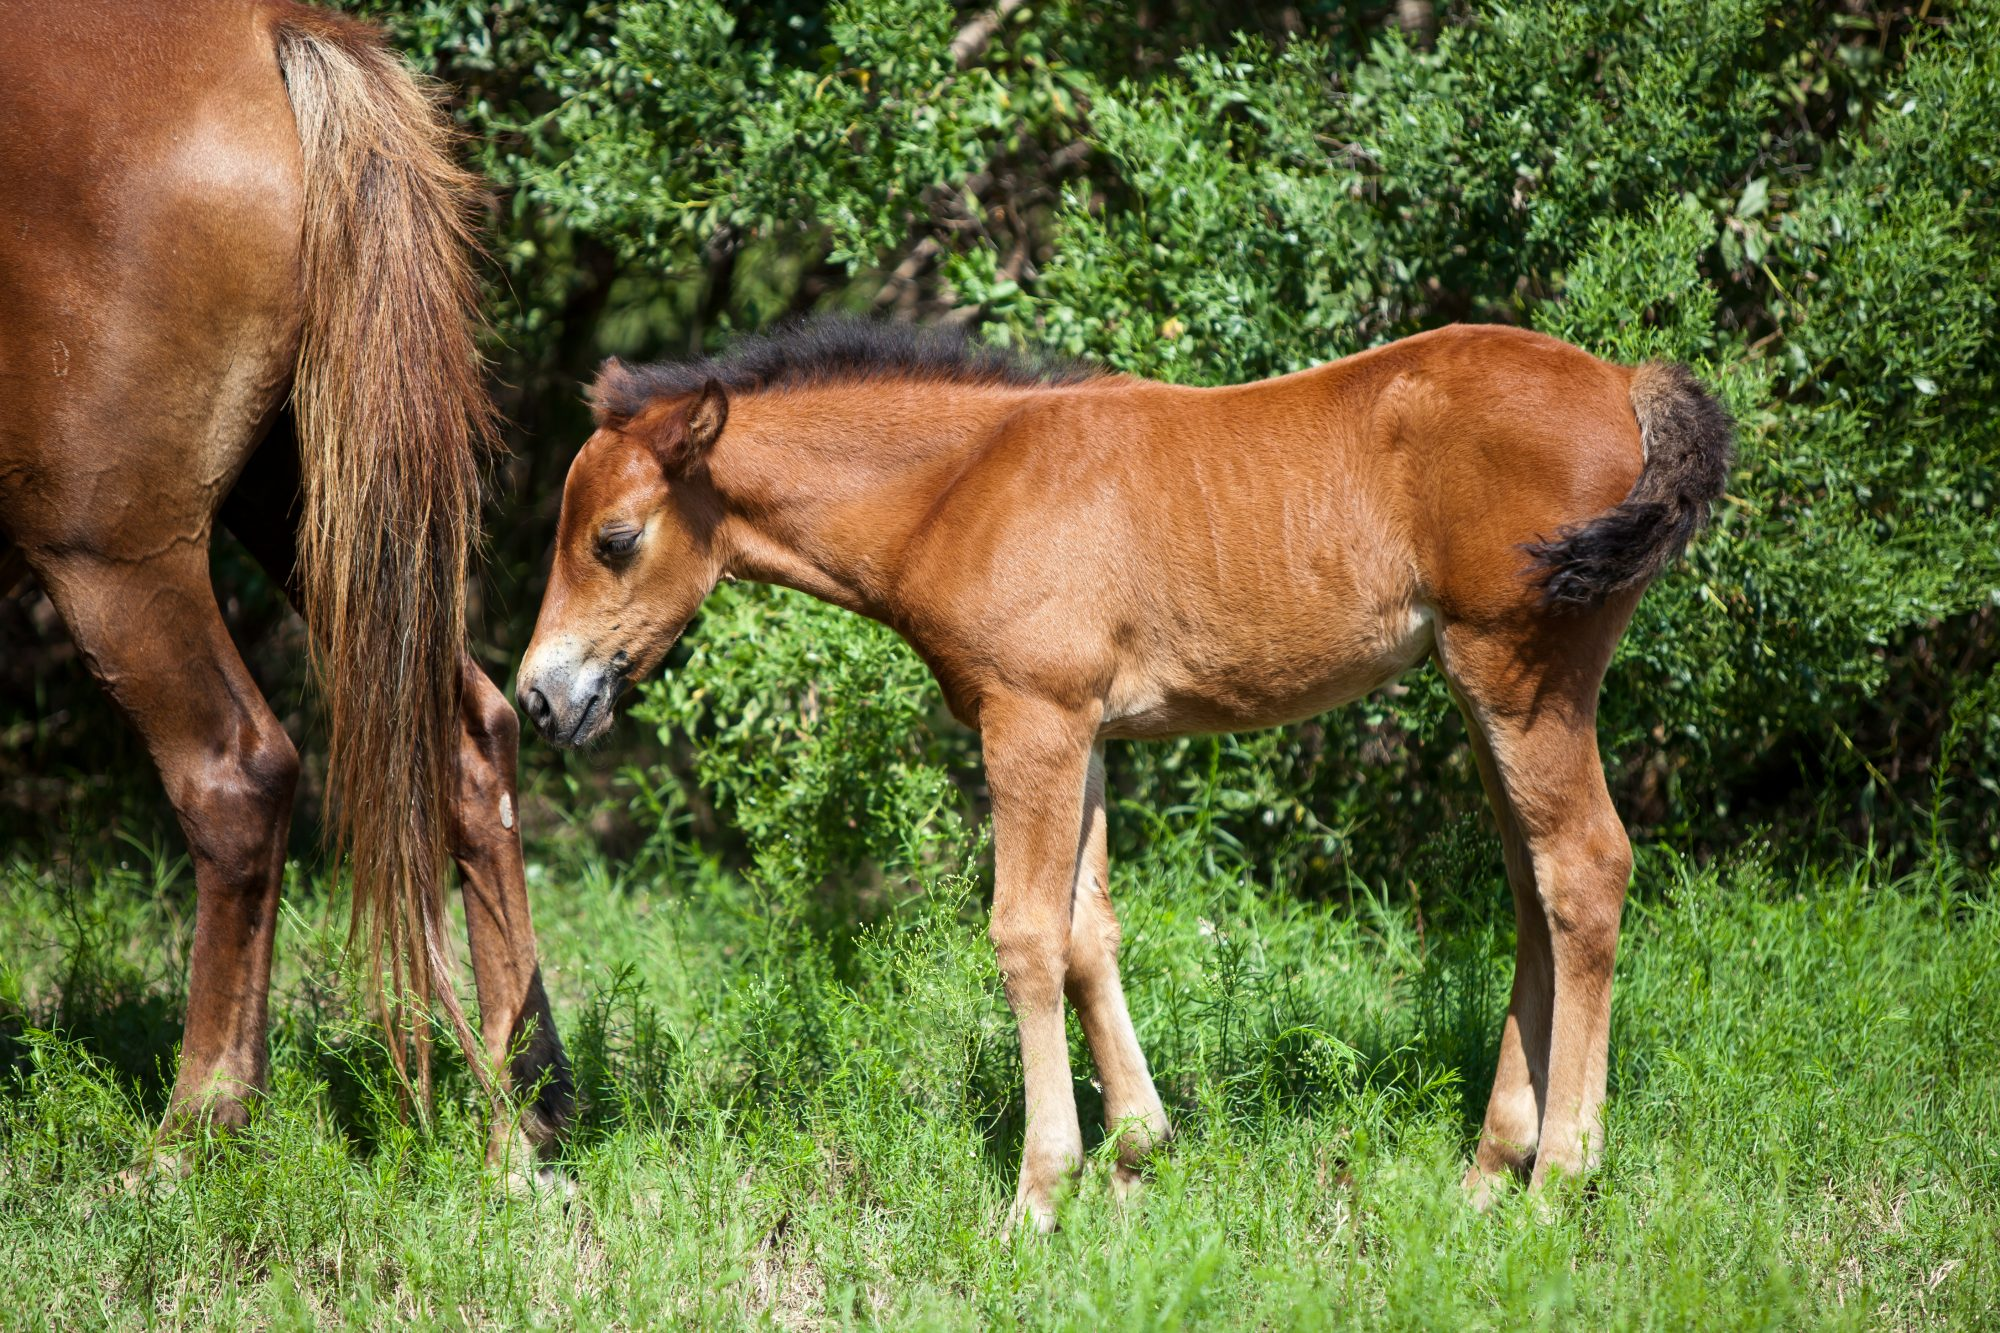 See a Rare Video of Young Foal Playing with its Wild Horse Mama in the Outer Banks